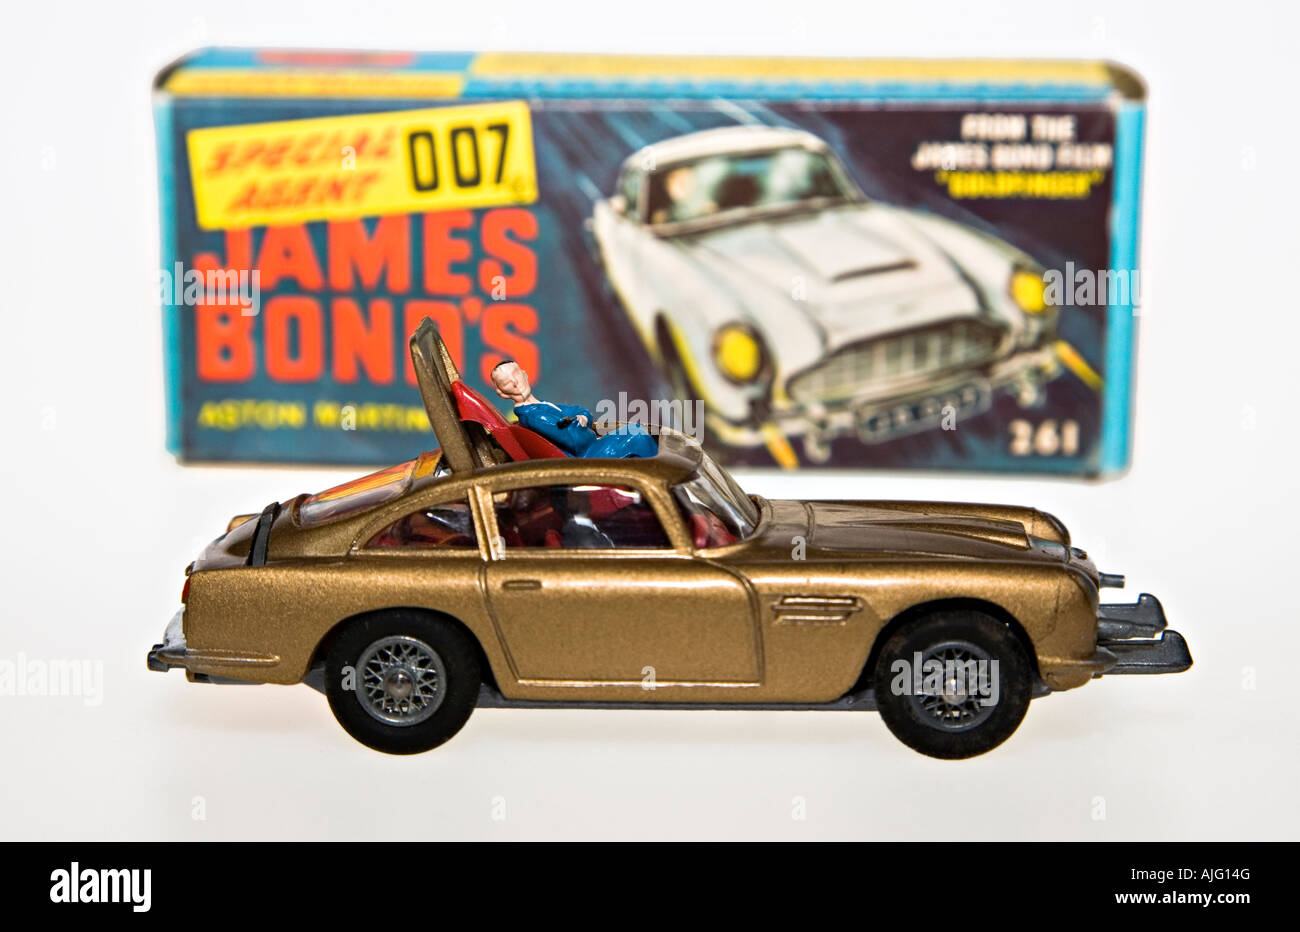 corgi model car james bond 007 aston martin db5 with original box